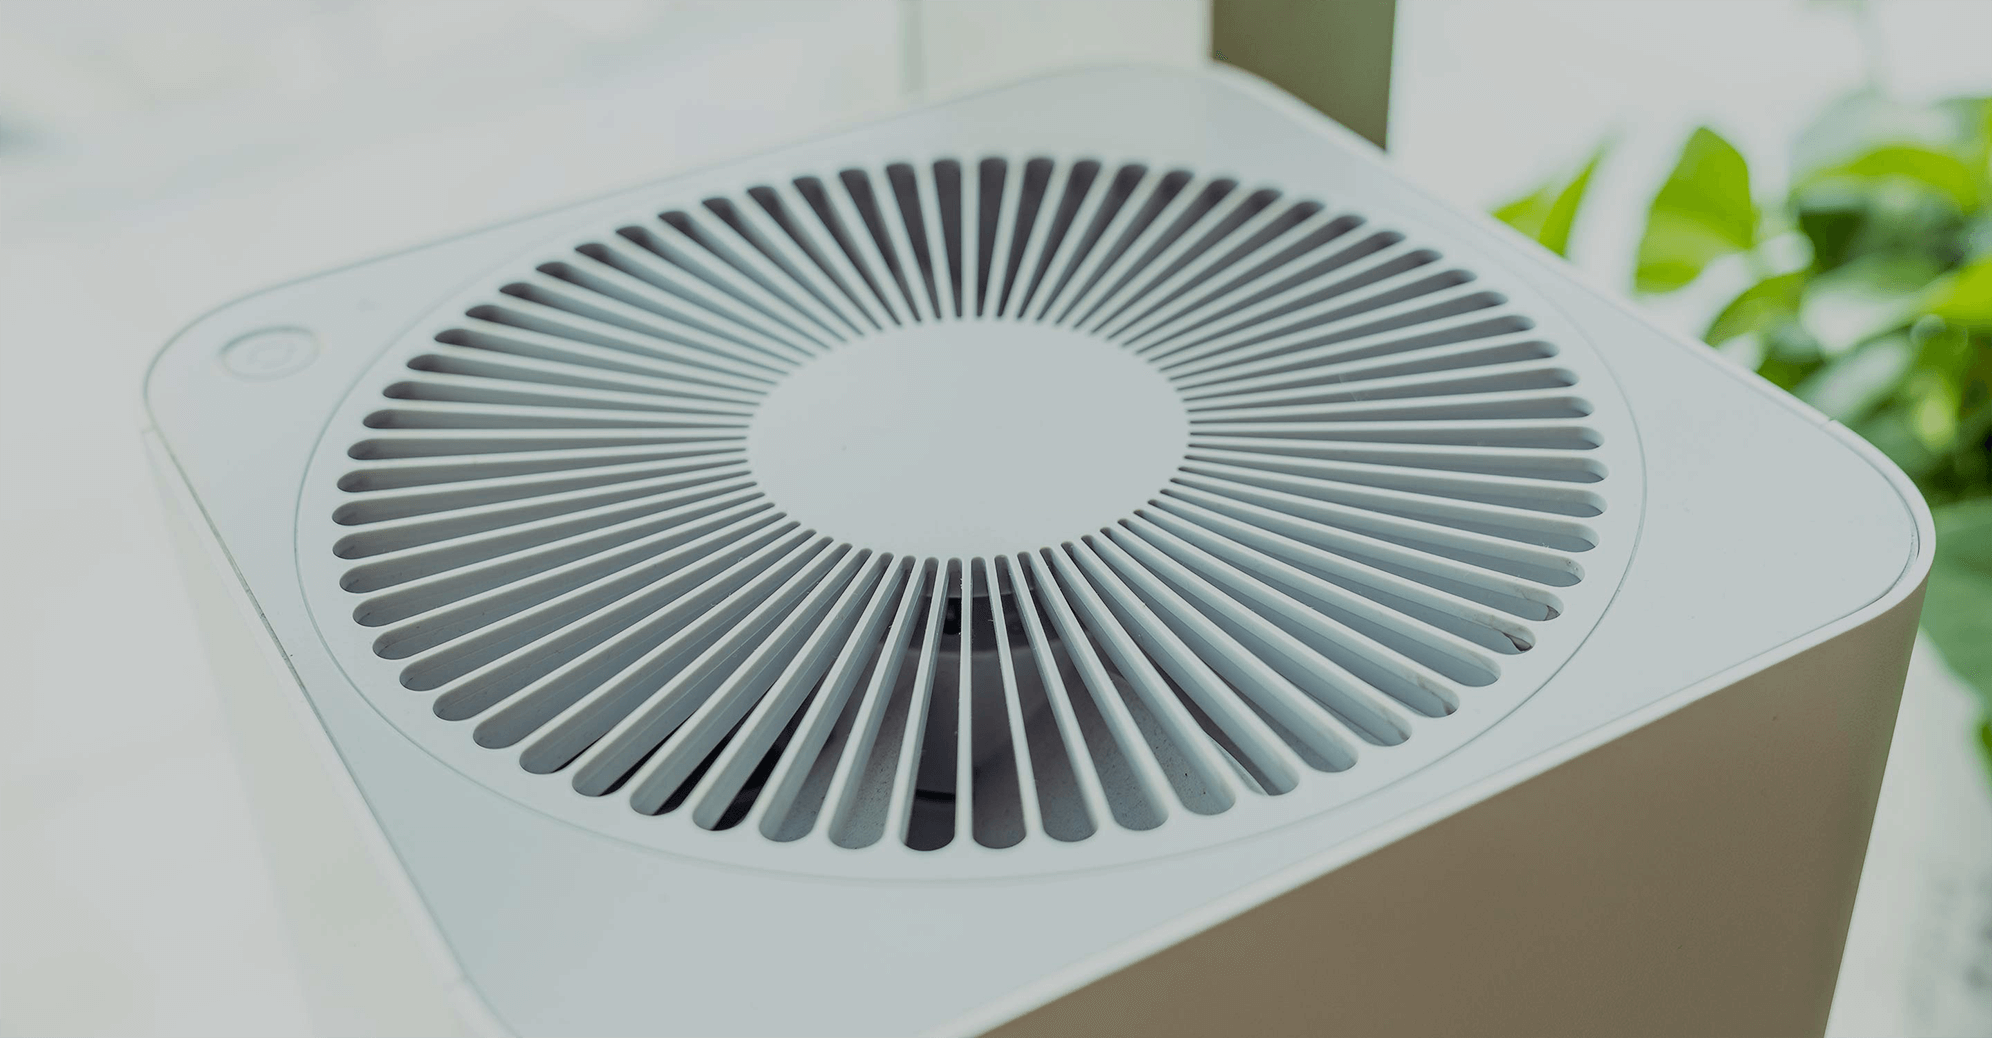 3 Myths about Air Purifiers that make you Look Dumb